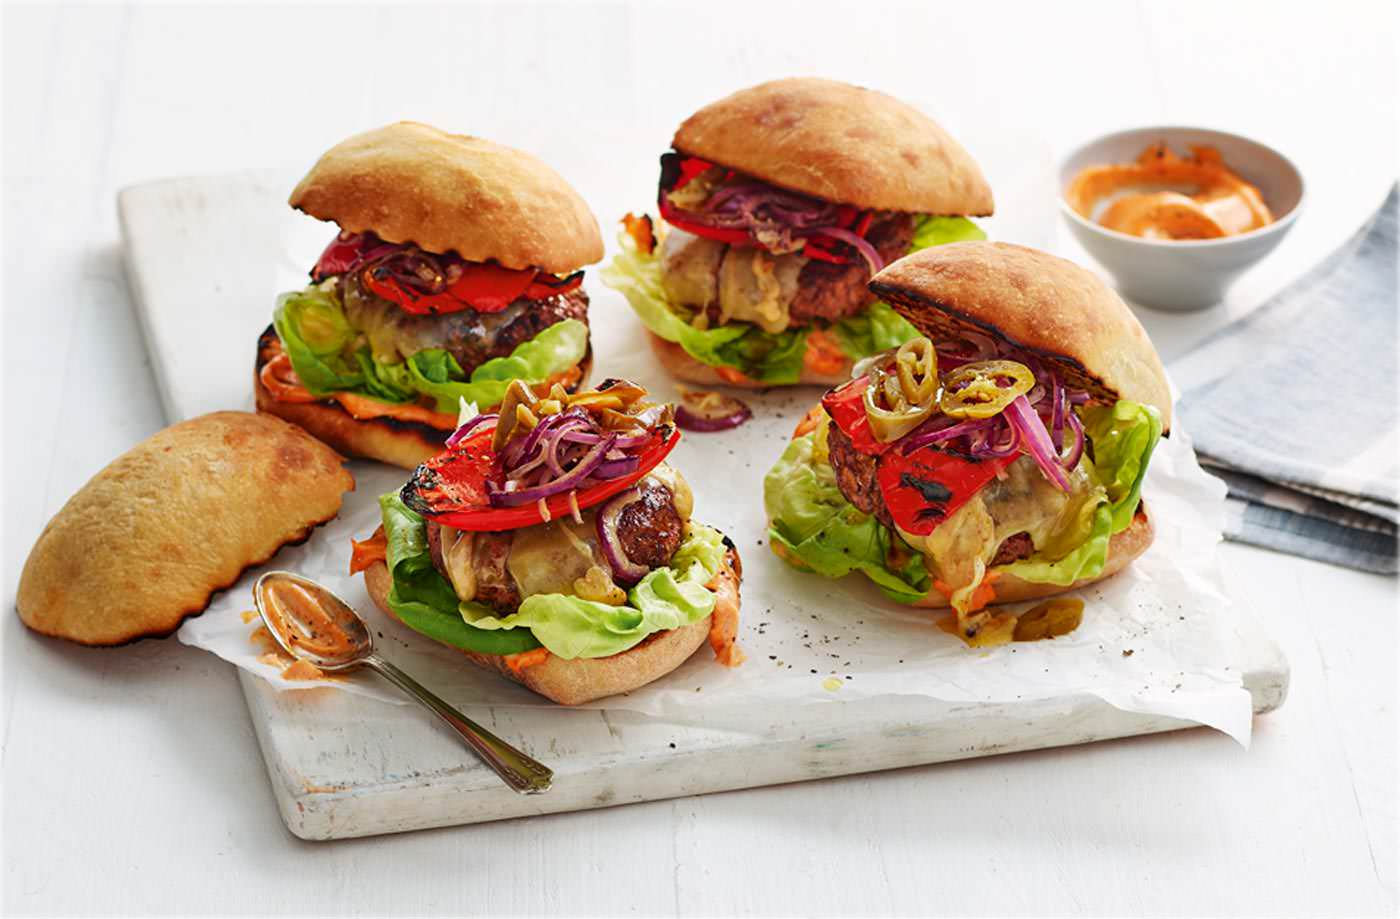 Dee's 'fingers crossed' paprika burgers recipe